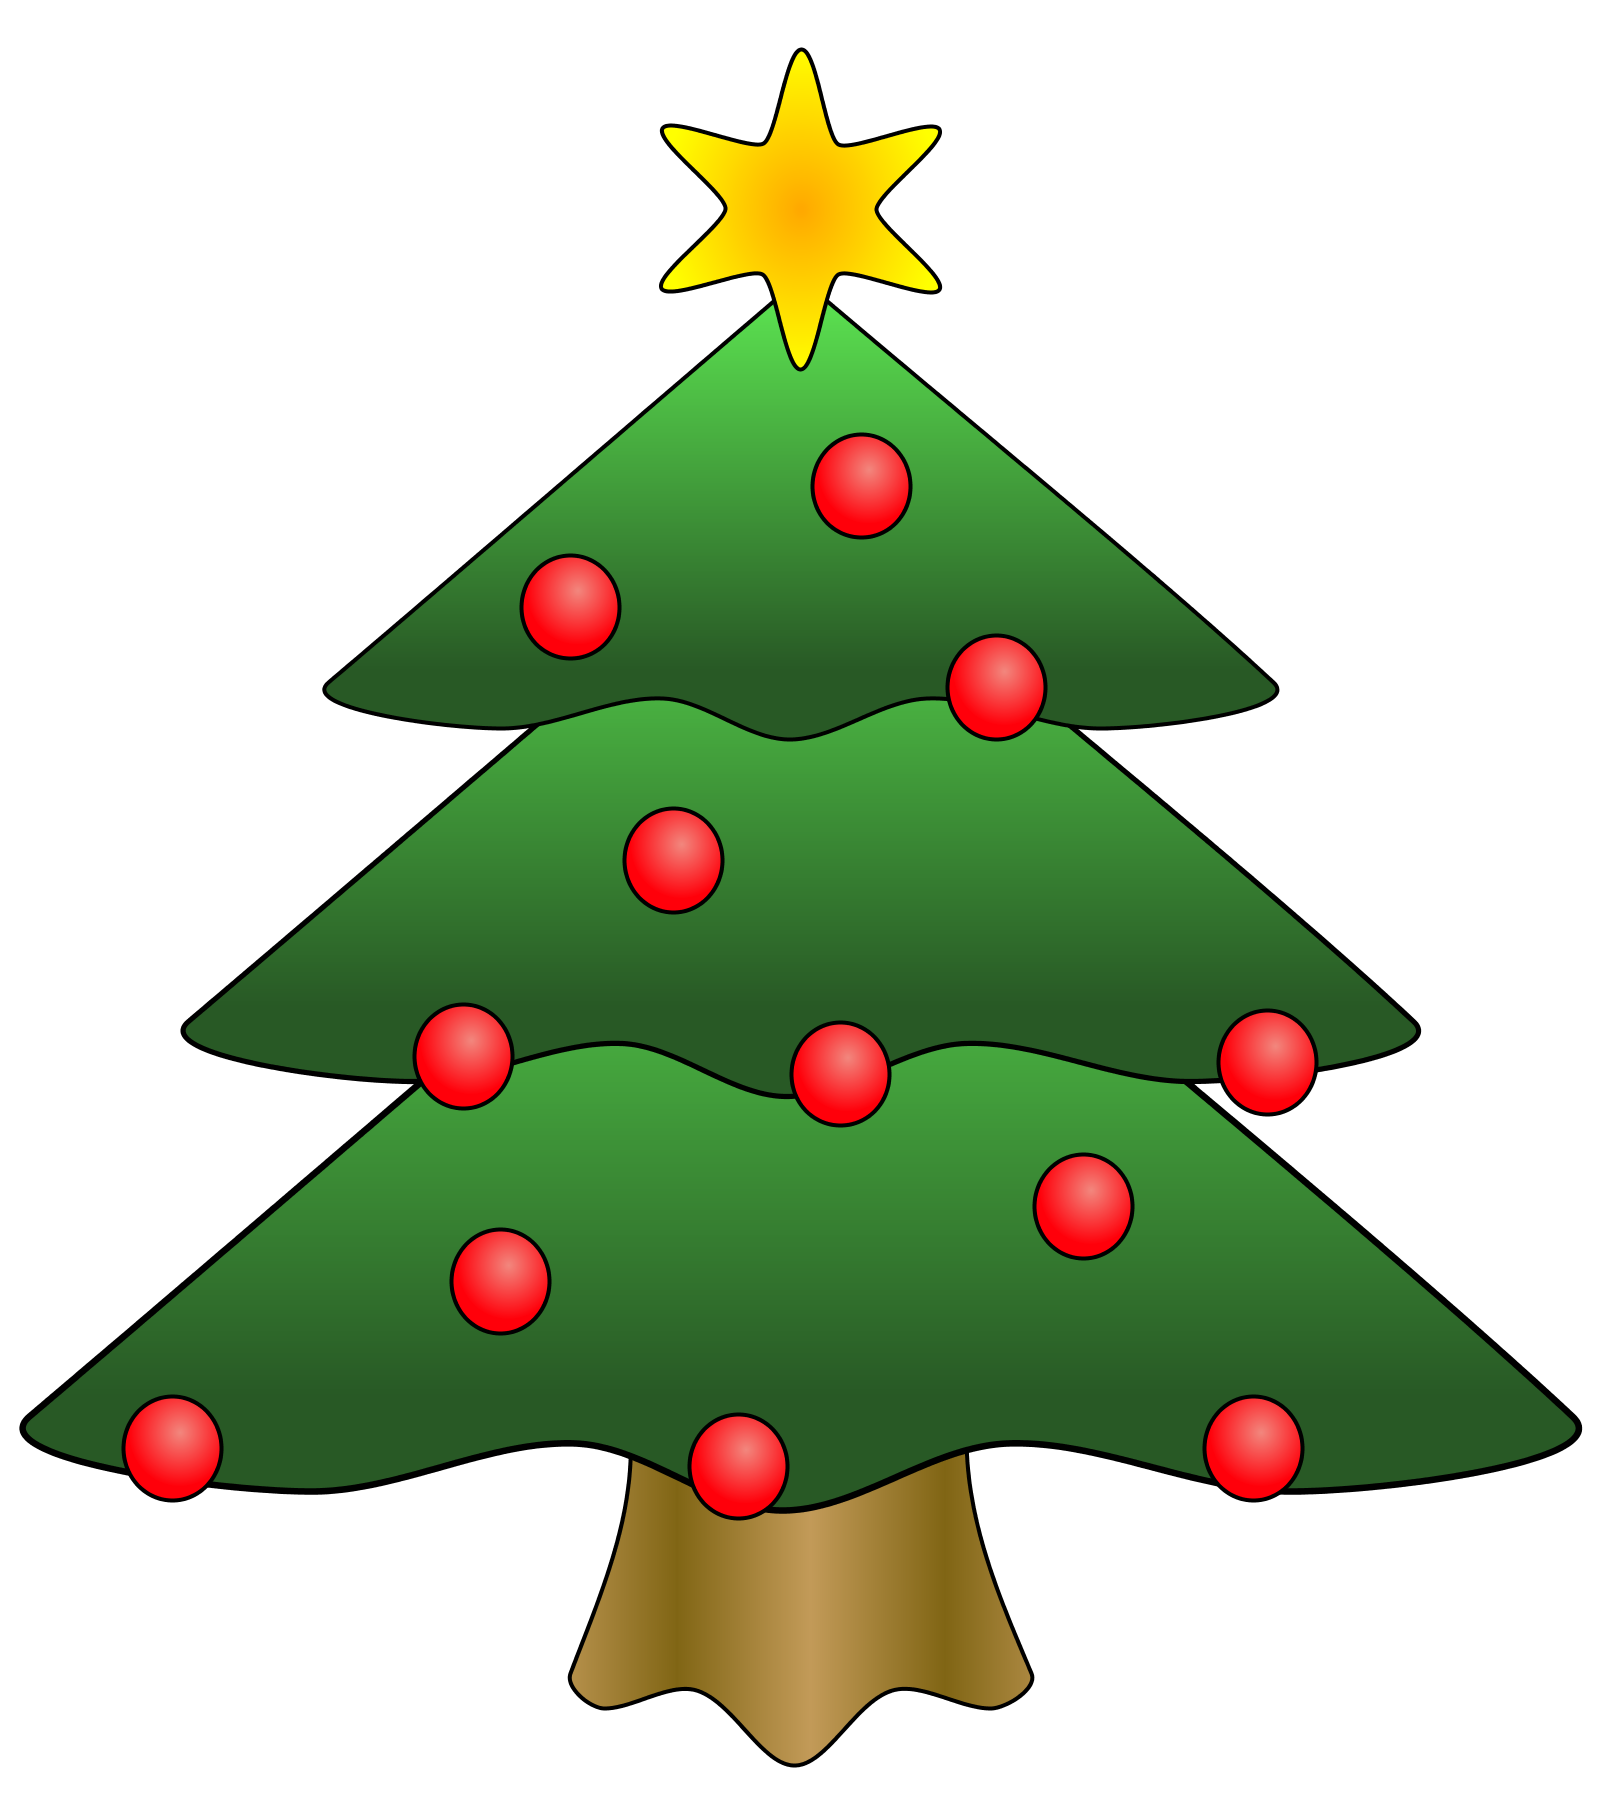 Christmas Tree Clip Art   Clip Art Christmas Tree   Free Christmas